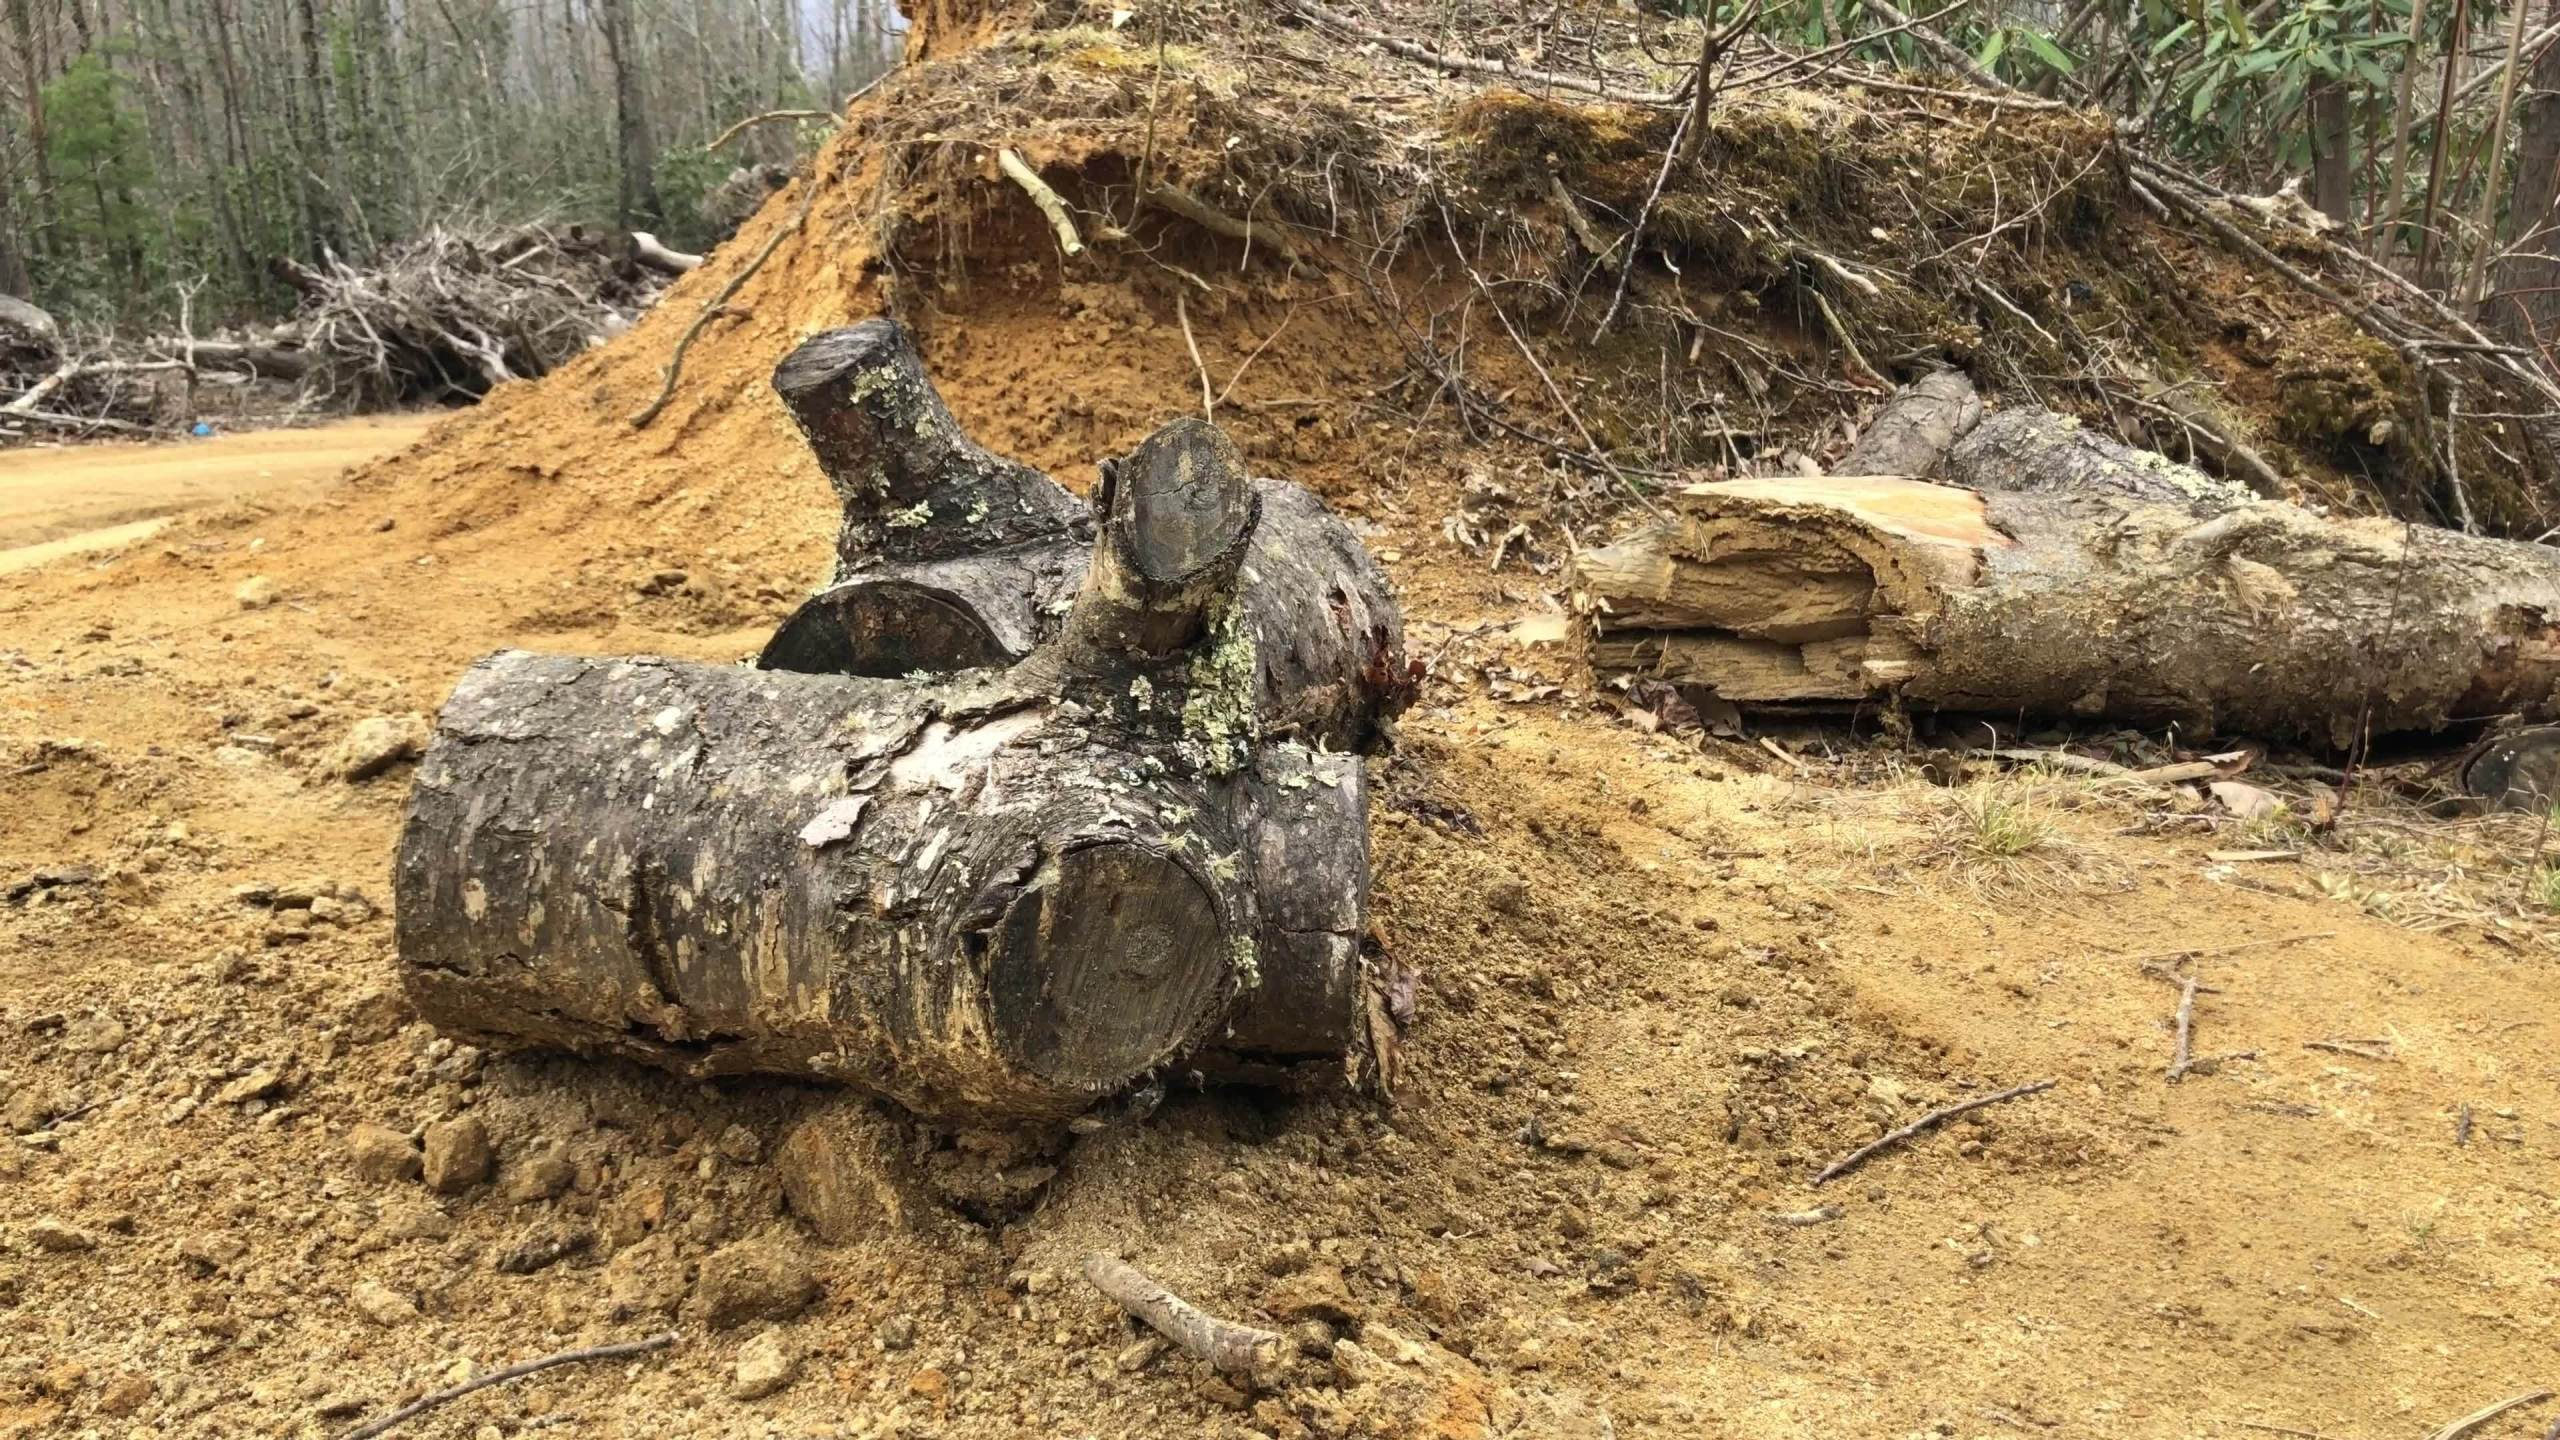 Animal dumping in Carter County